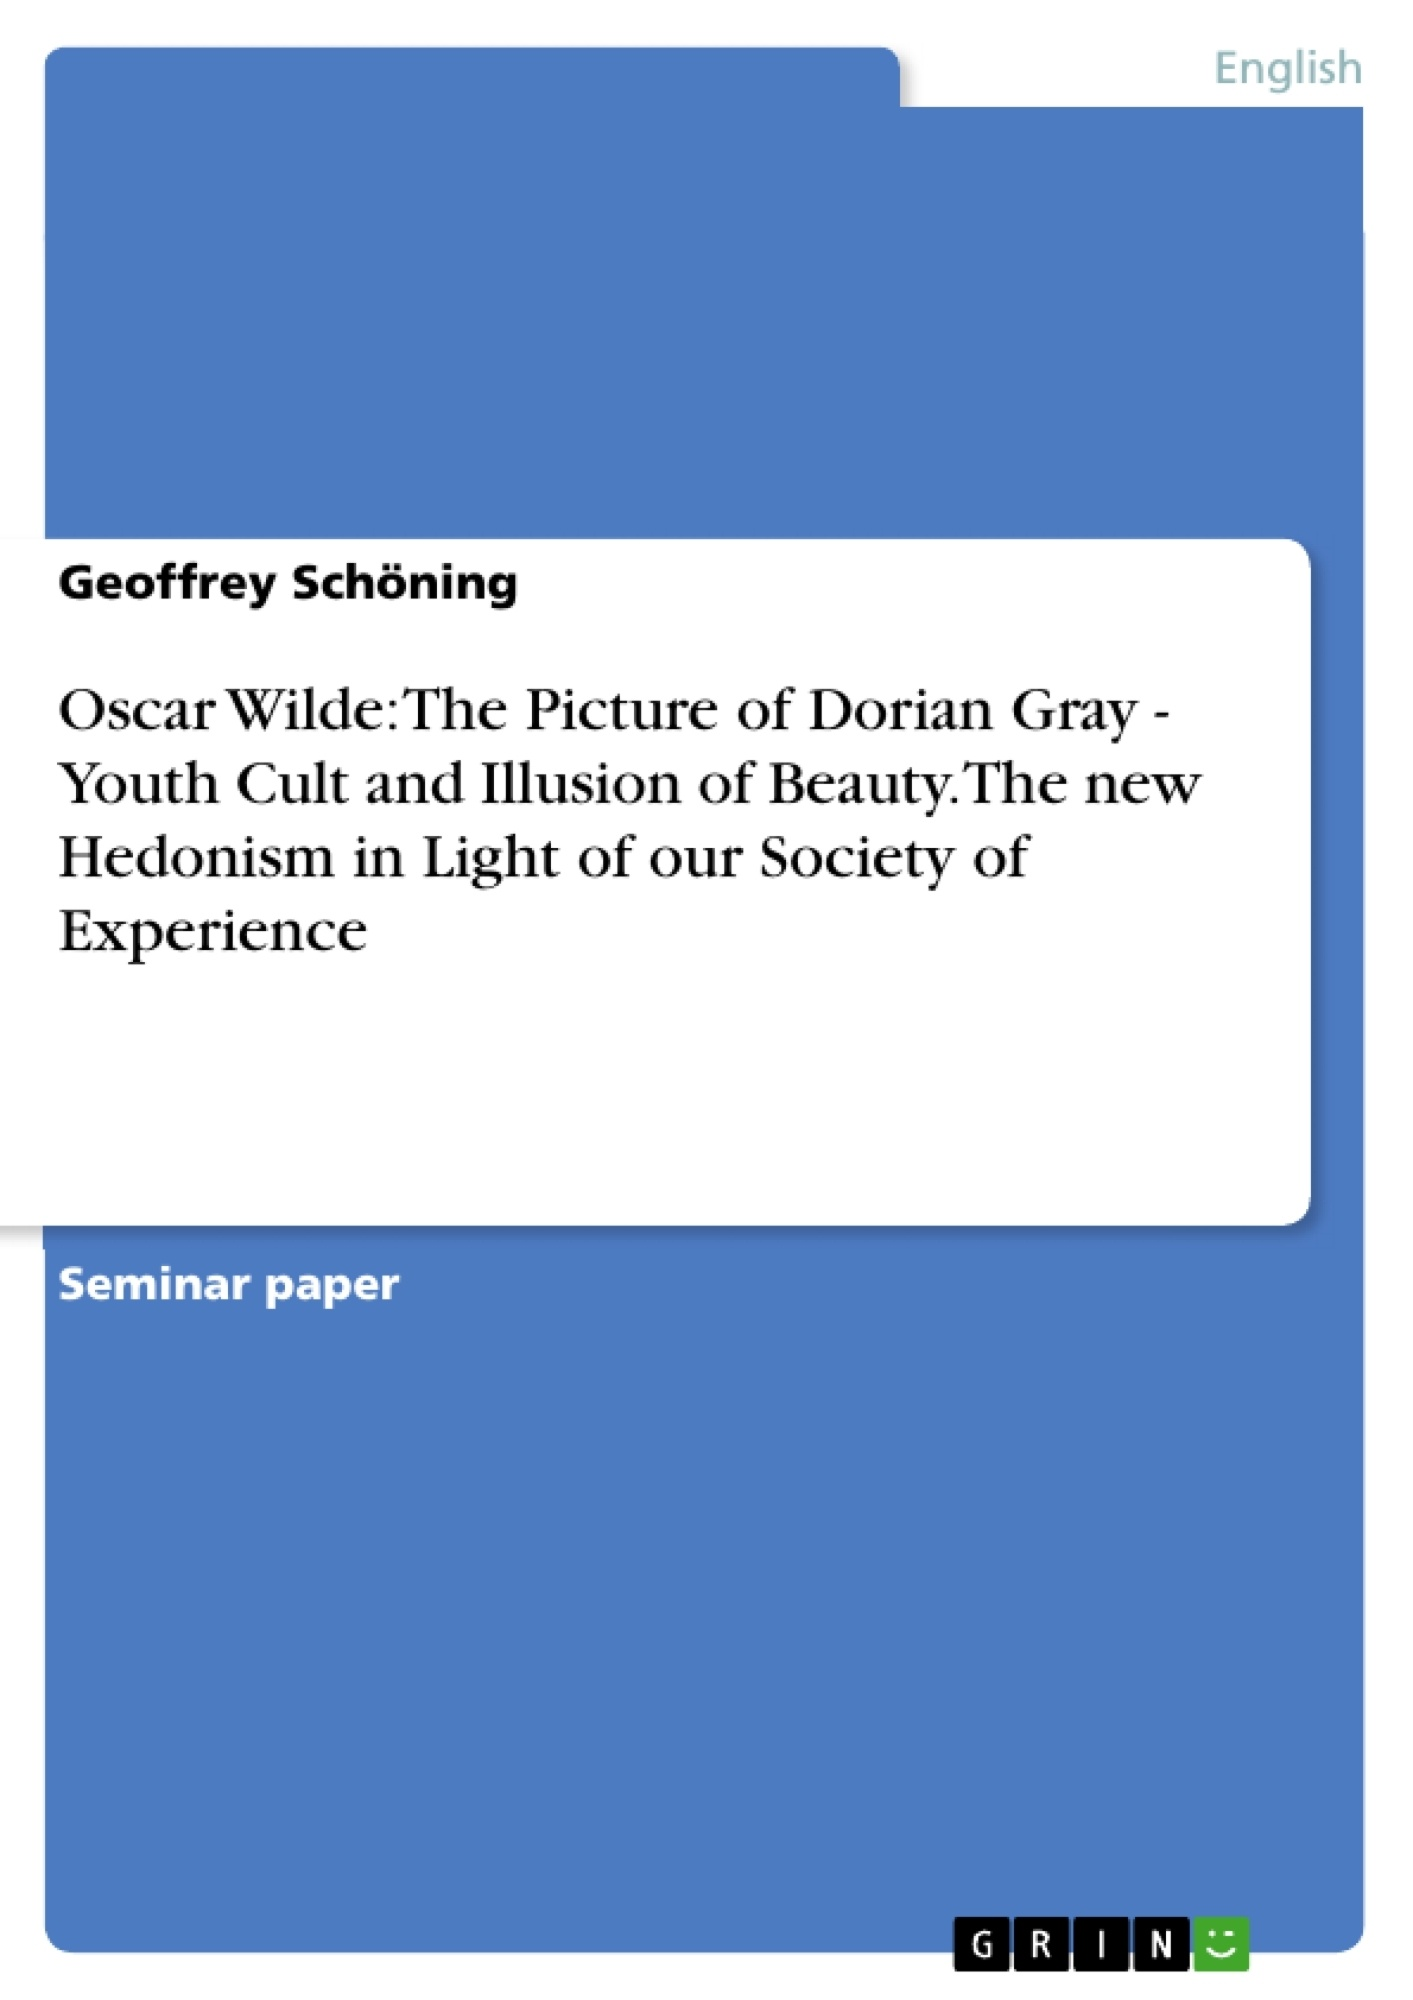 oscar wilde the picture of dorian gray youth cult and illusion  oscar wilde the picture of dorian gray youth cult and illusion publish your master s thesis bachelor s thesis essay or term paper